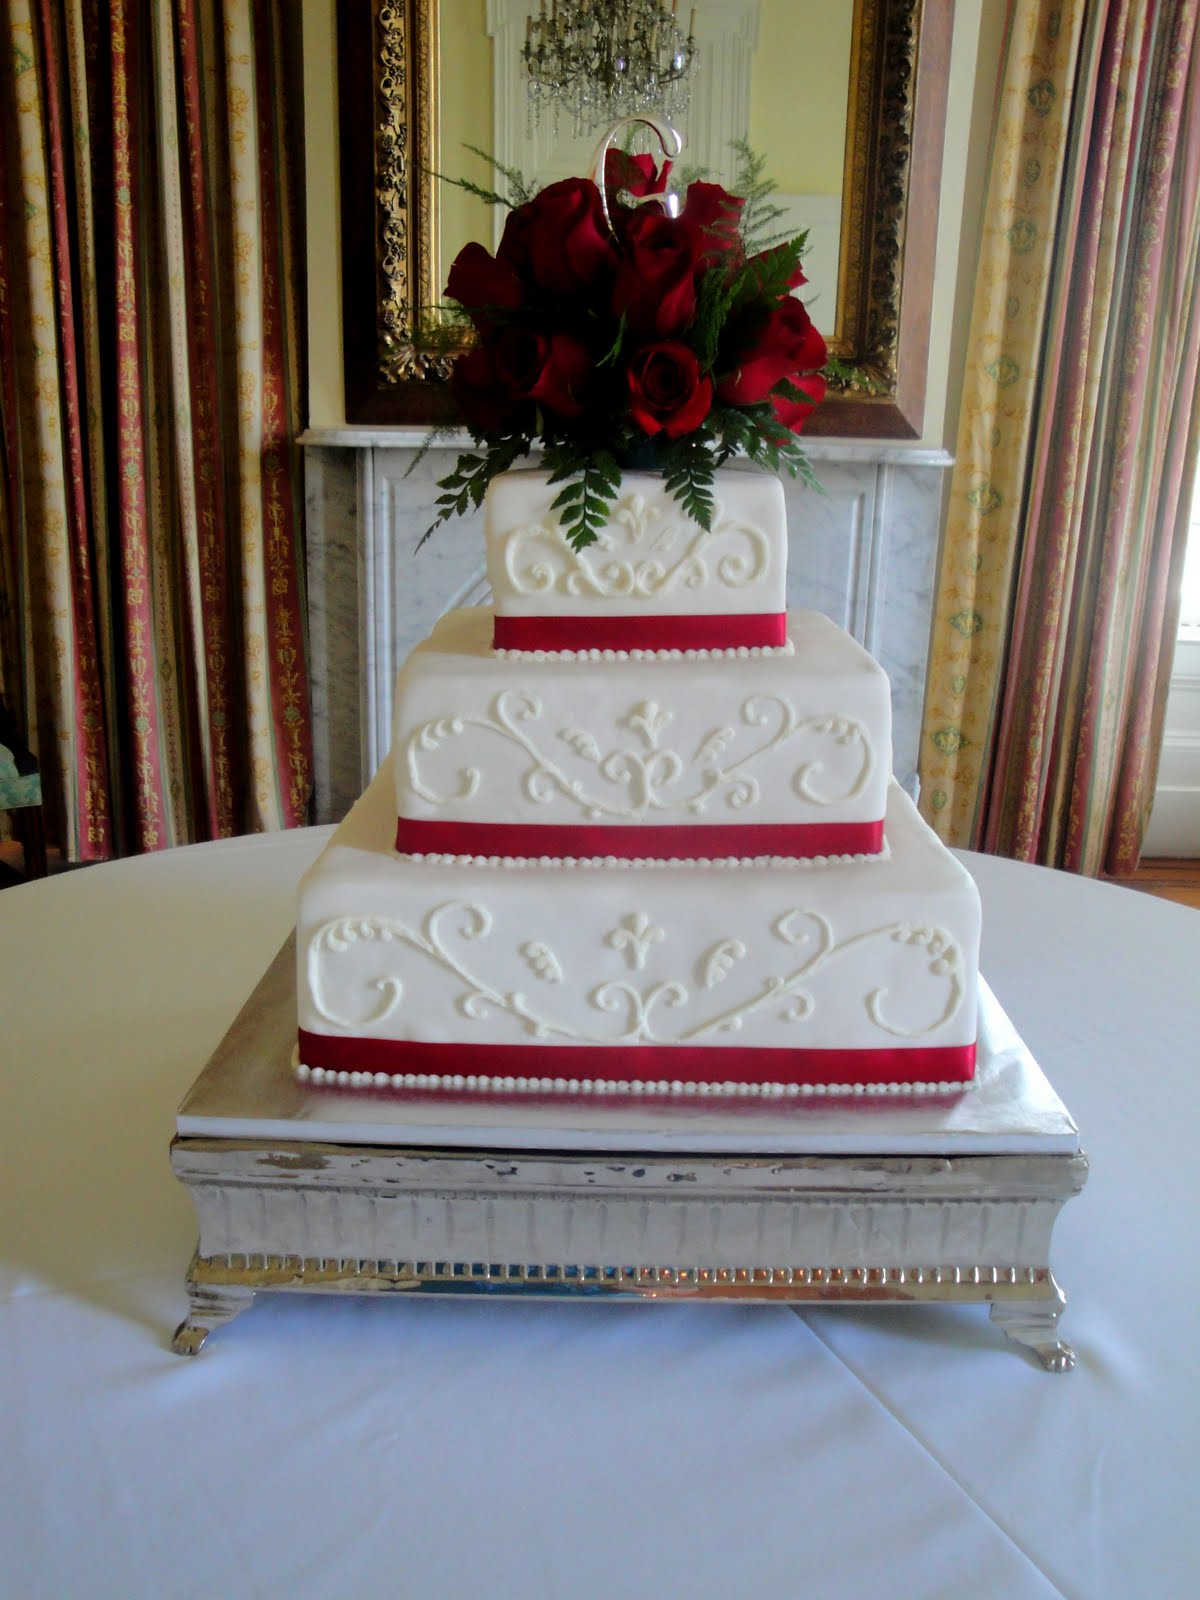 Confections Wedding cakes